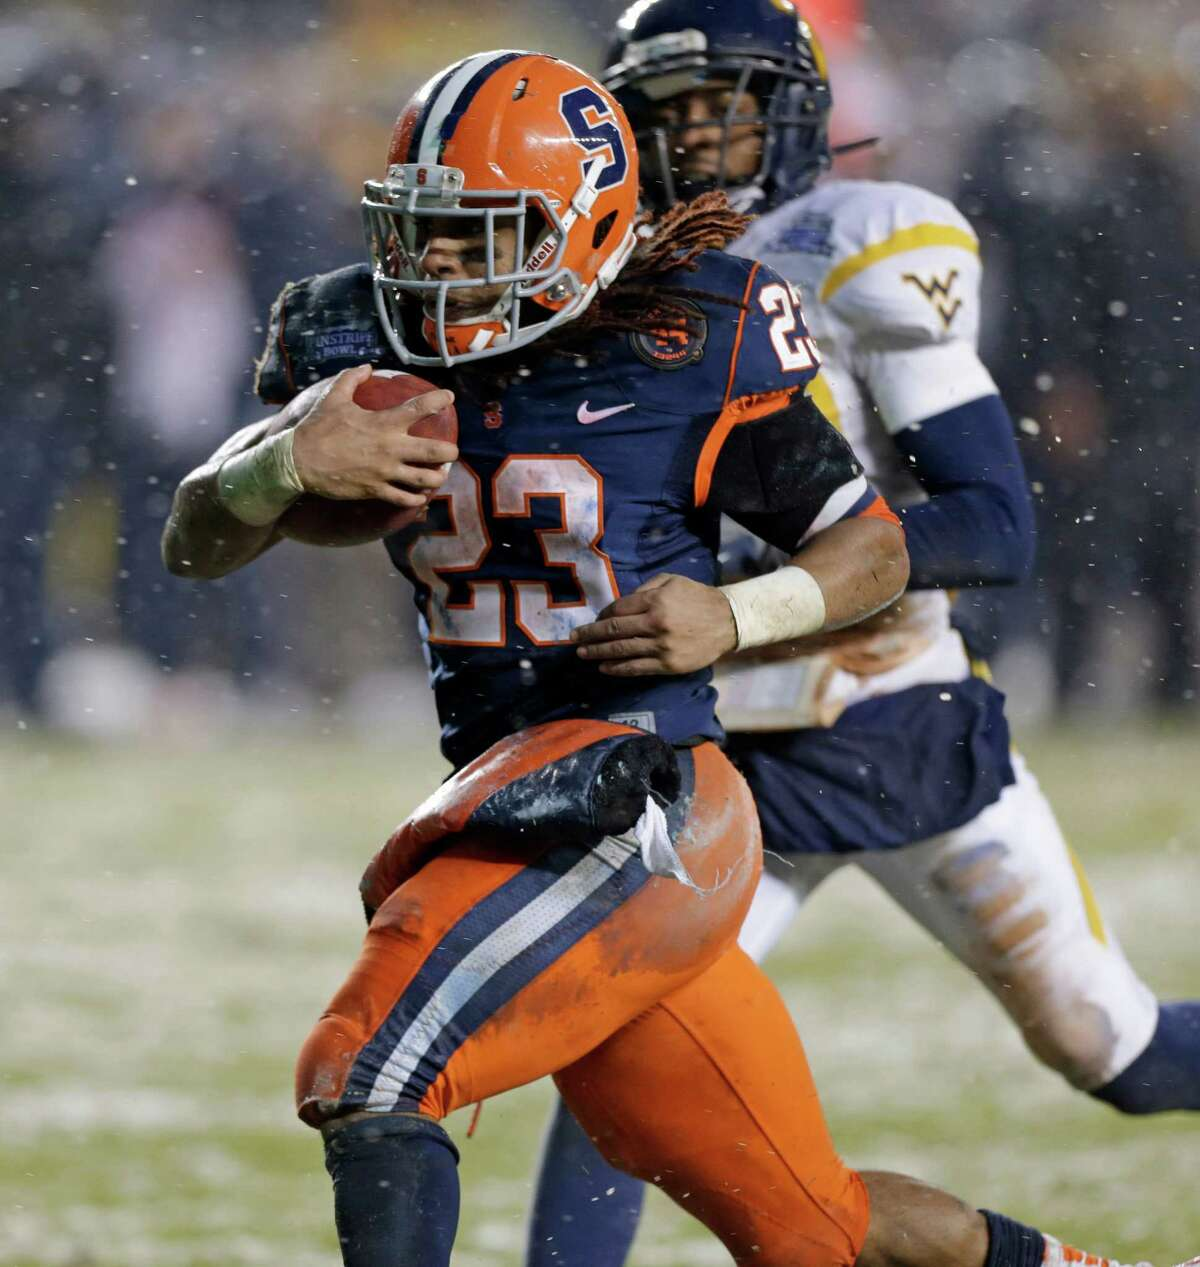 With West Virginia cornerback Pat Miller, rear, in pursuit, Syracuse running back Prince-Tyson Gulley (23) heads for the end zone for a second-quarter touchdown in the Pinstripe Bowl NCAA college football game at Yankee Stadium in New York, Saturday, Dec. 29, 2012. (AP Photo/Kathy Willens)